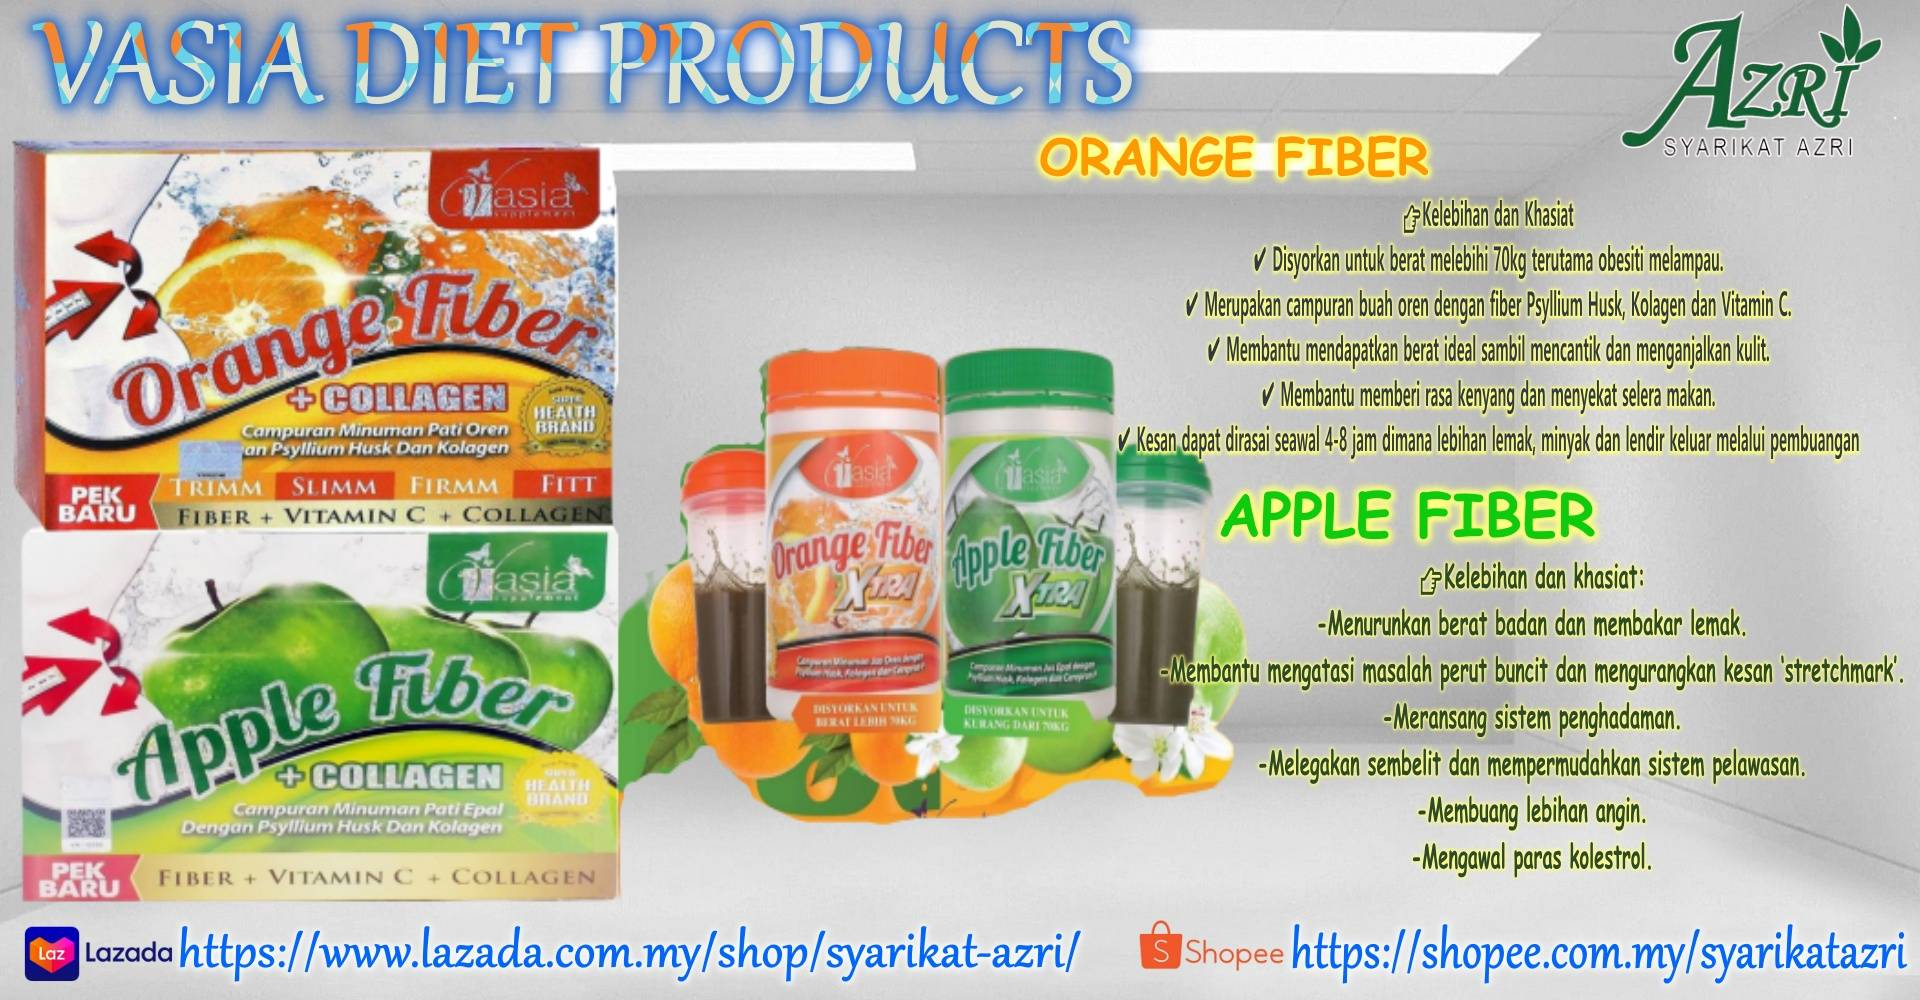 VASIA DIET PRODUCTS